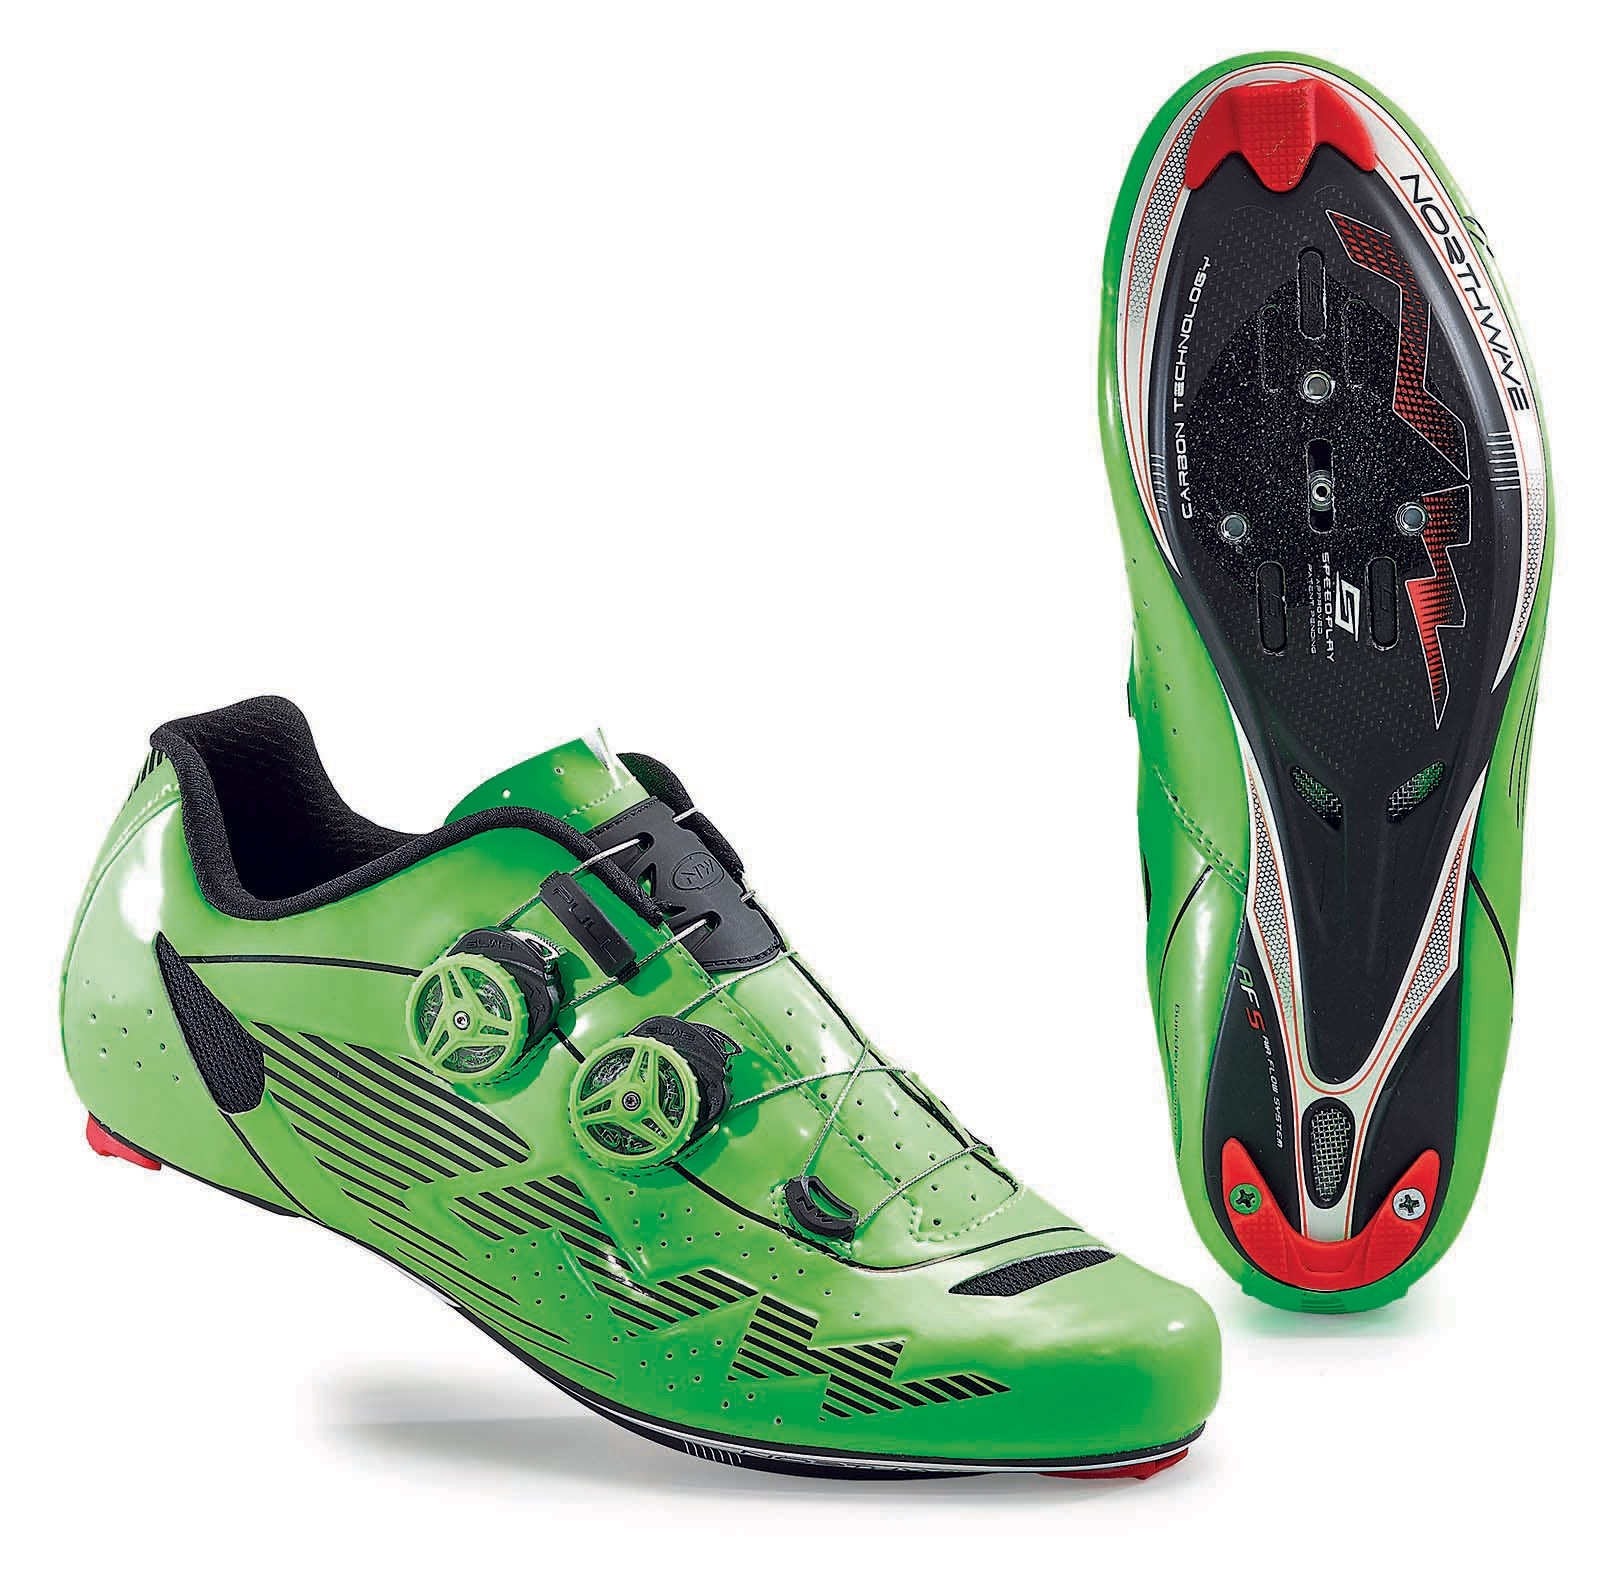 NORTHWAVE Man road cycling shoes EVOLUTION PLUS fluorescent green